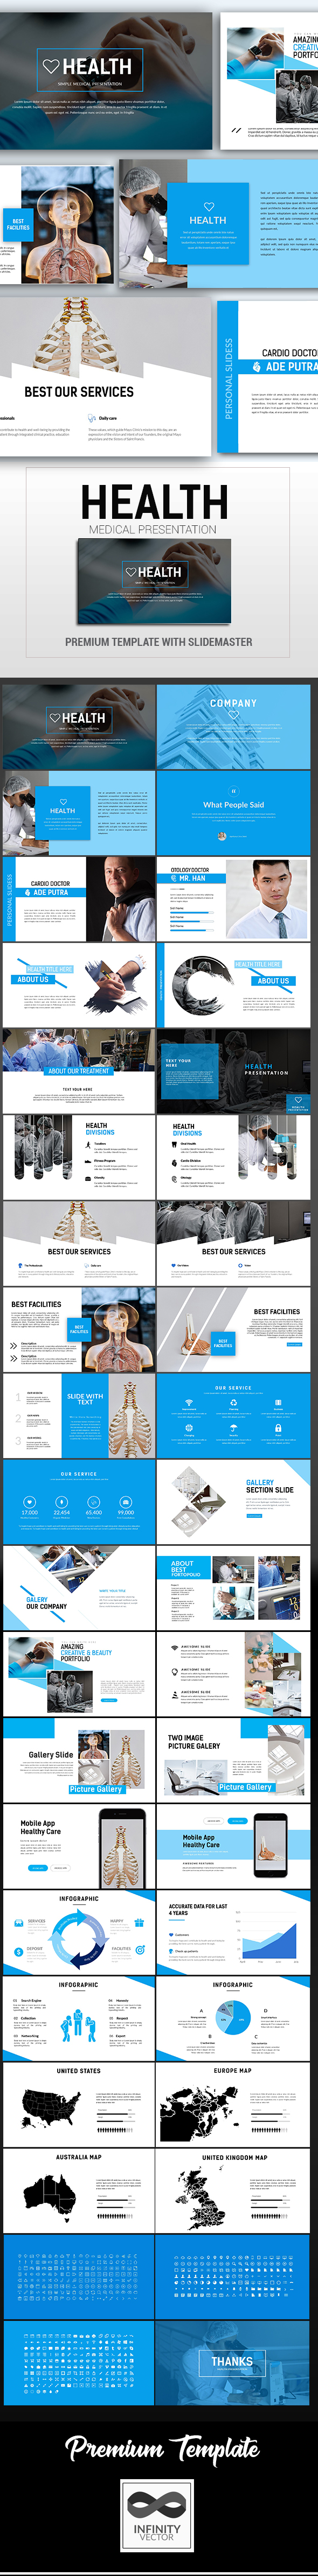 GraphicRiver Health Simple Medical Presentation Google Slide 21131327